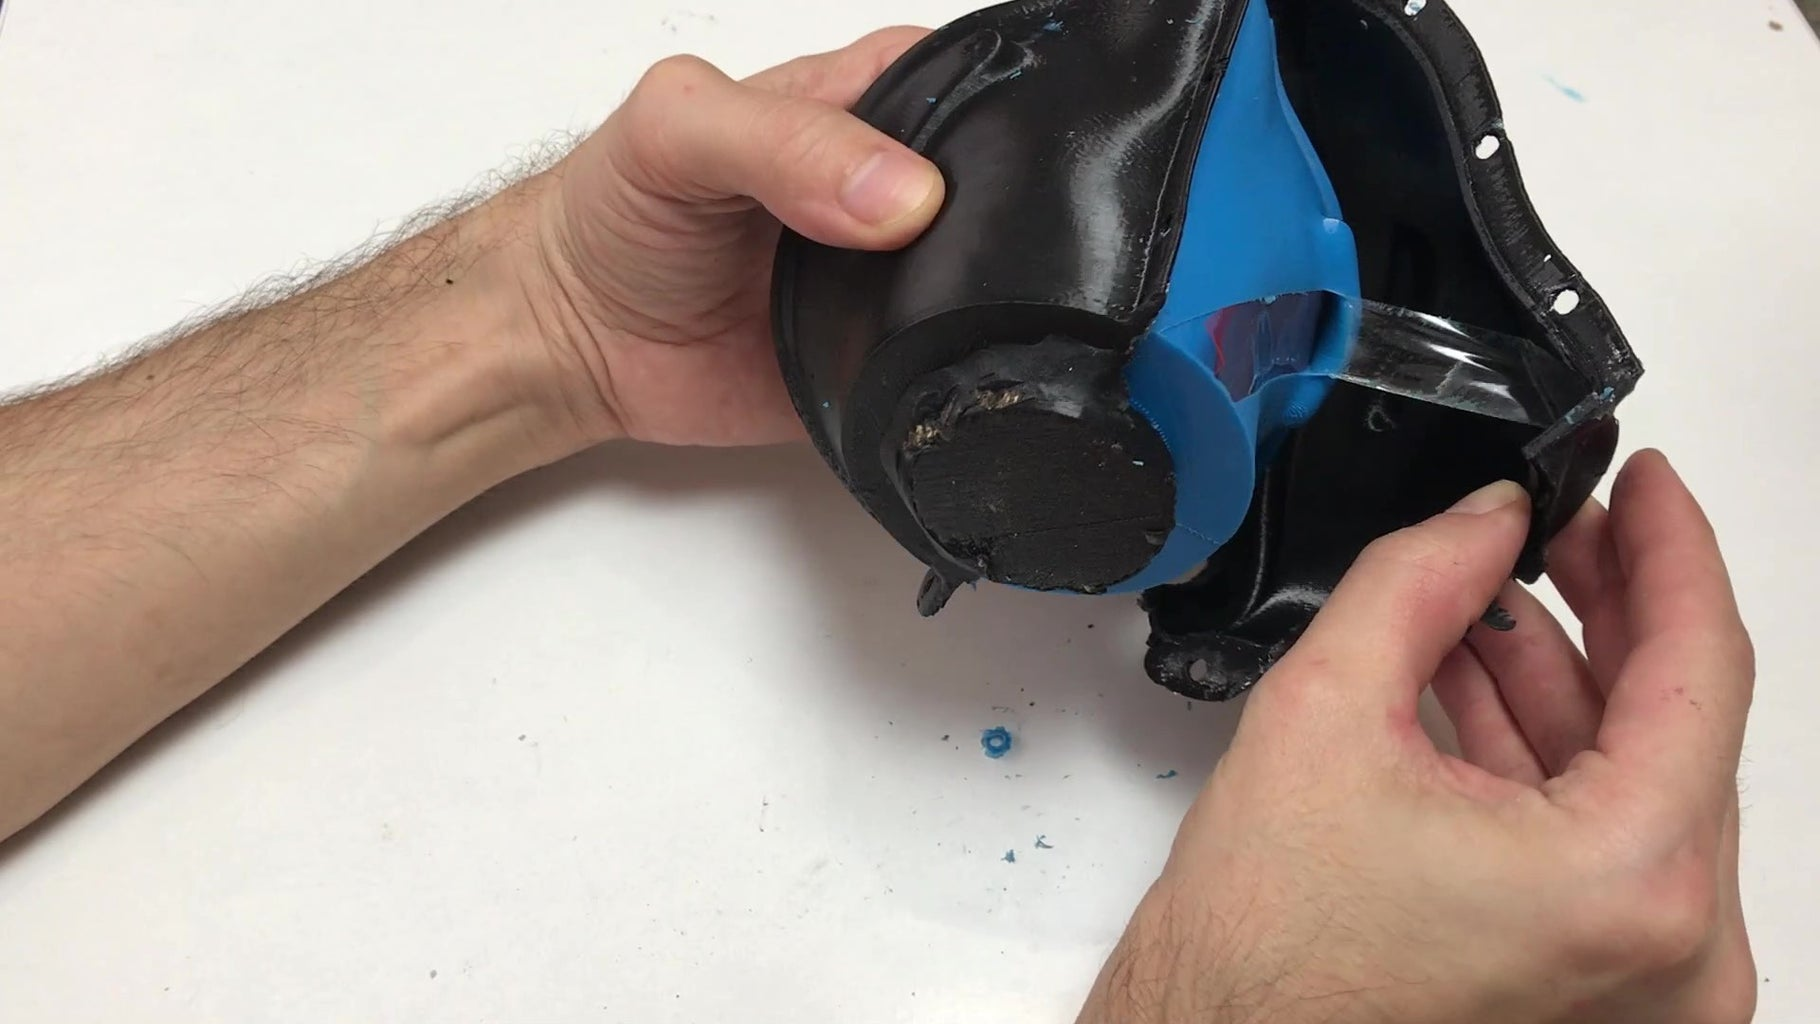 Taking the Mask Out of the Mold